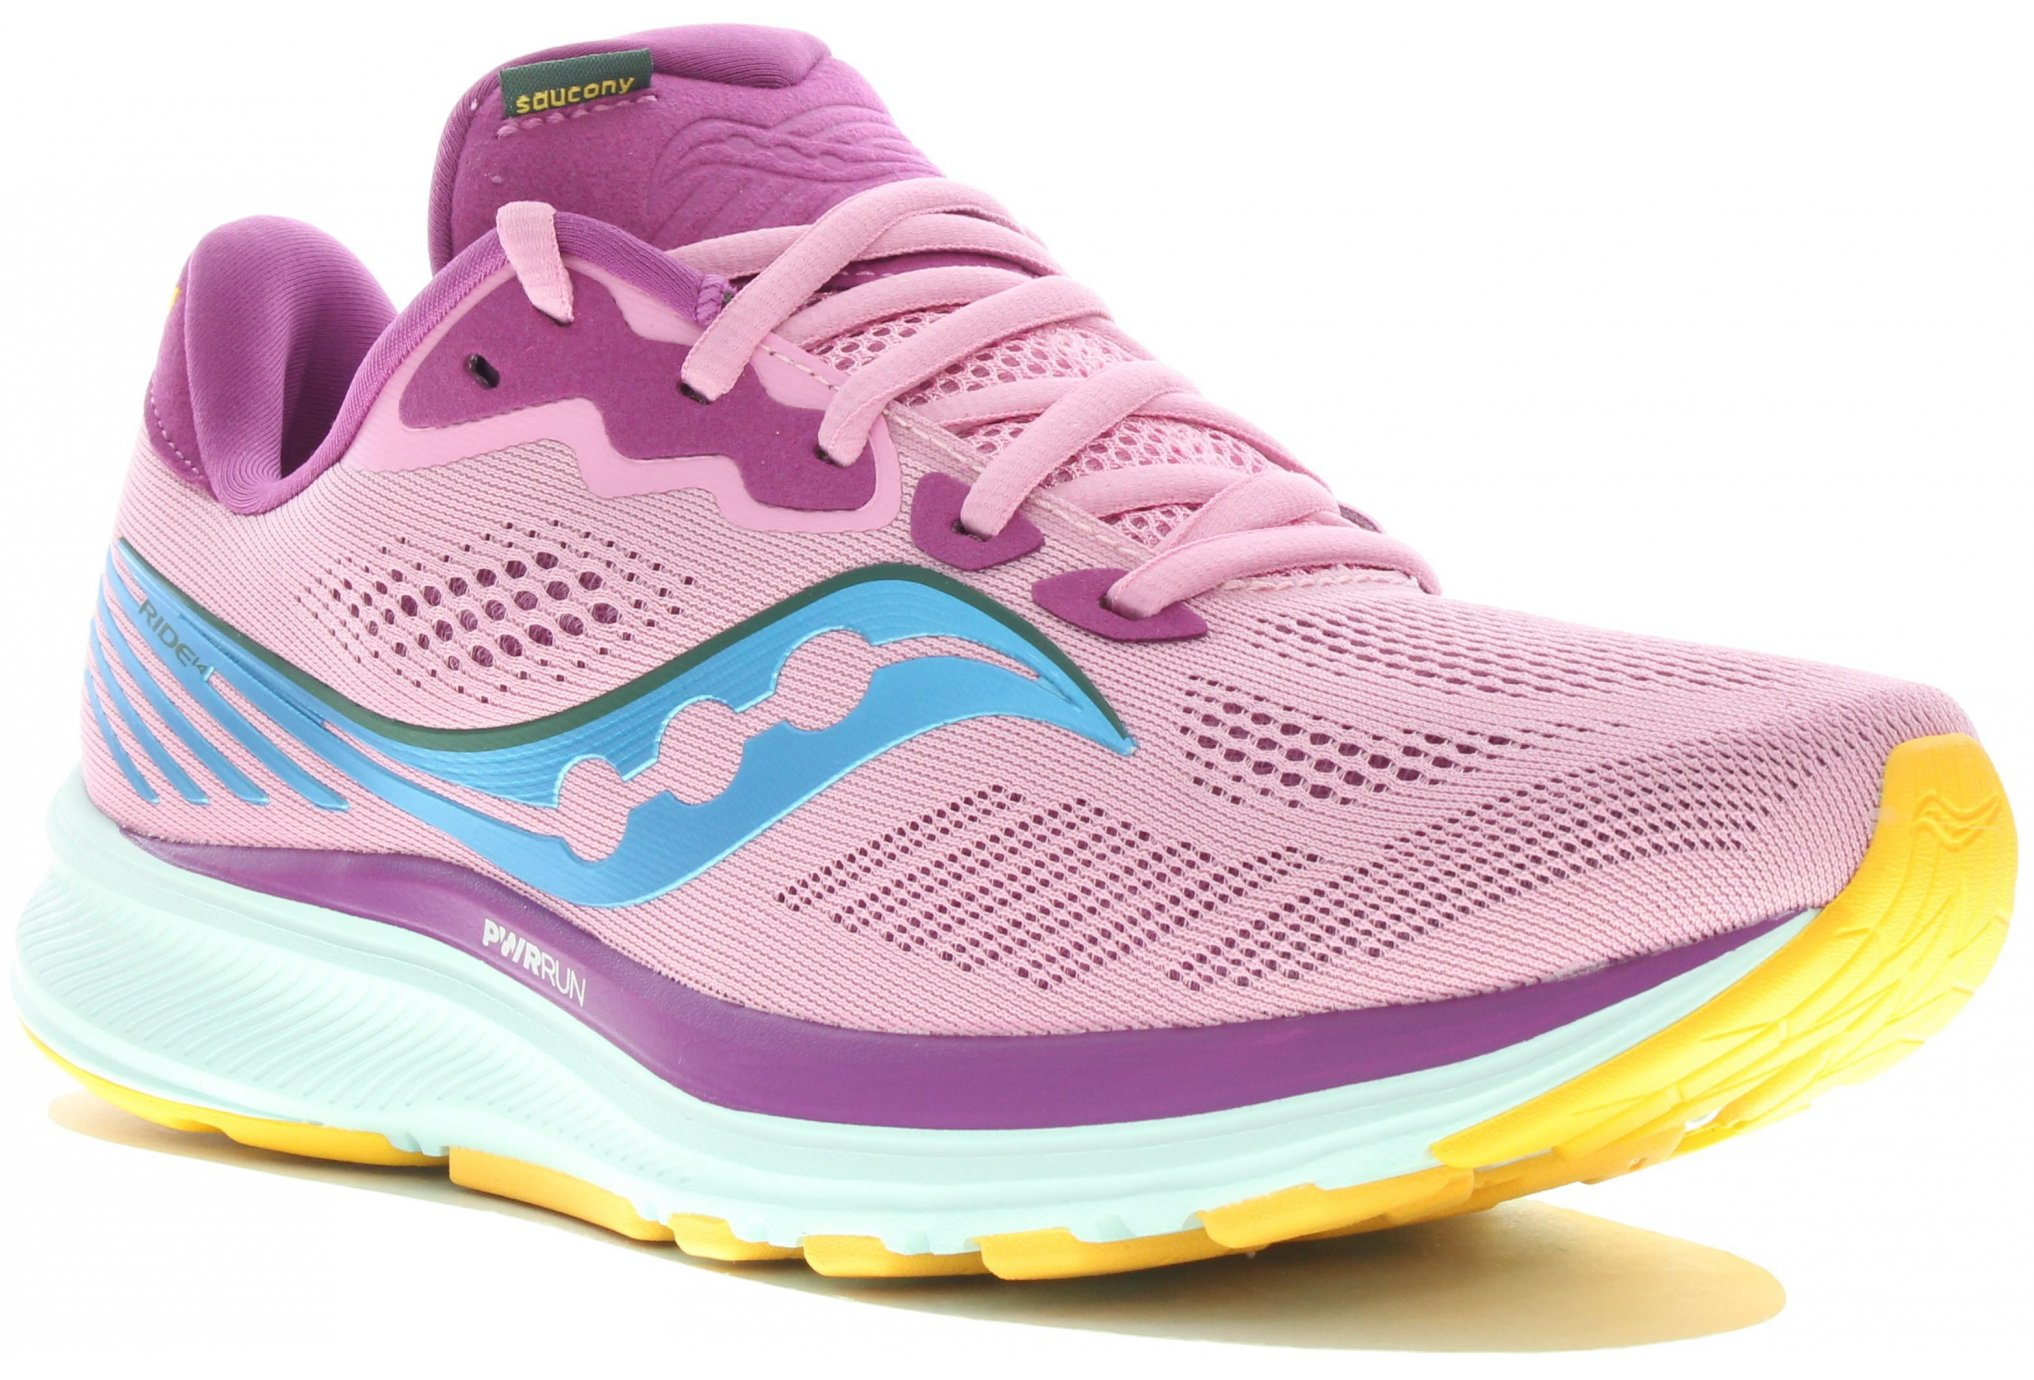 Saucony Ride 14 Future Spring W Chaussures running femme